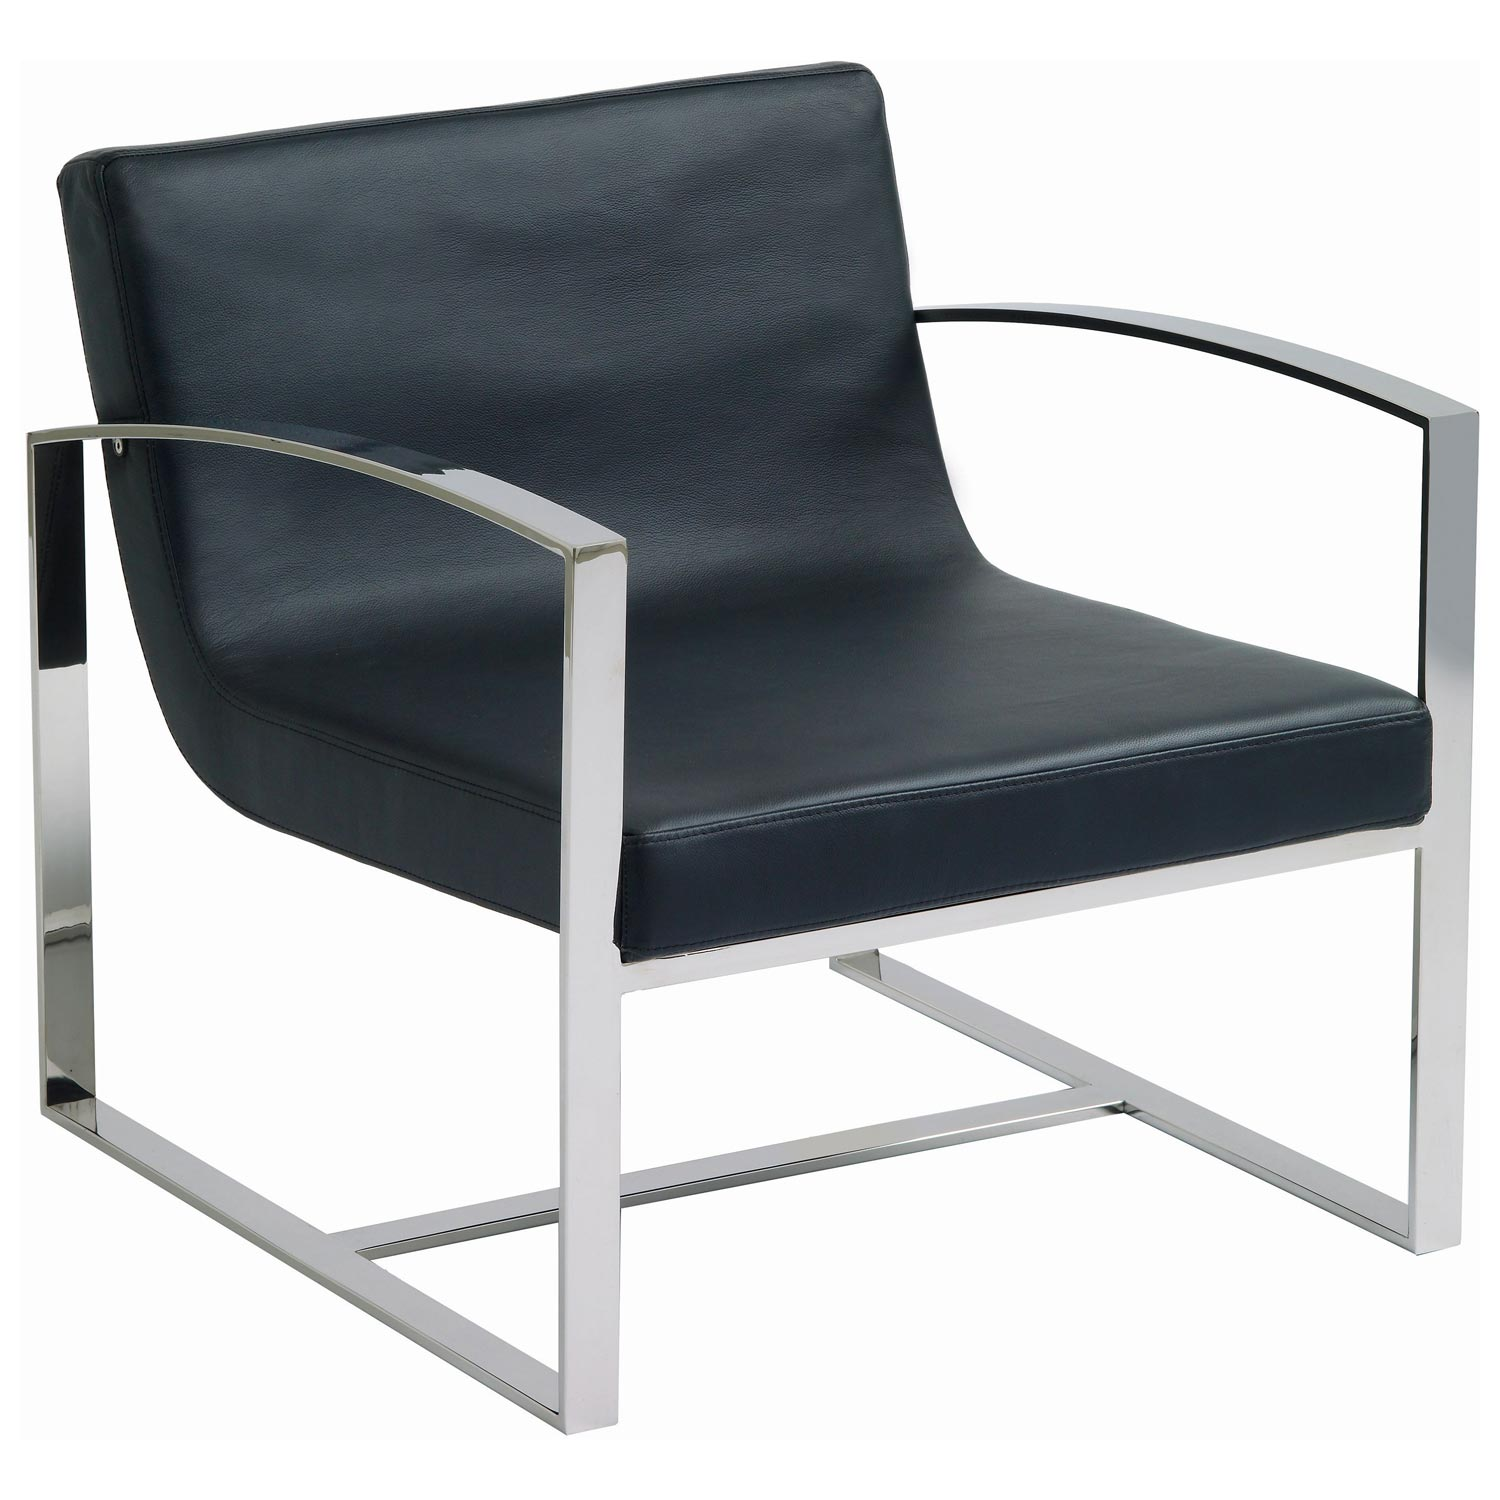 Corbin Lounge Chair - Black